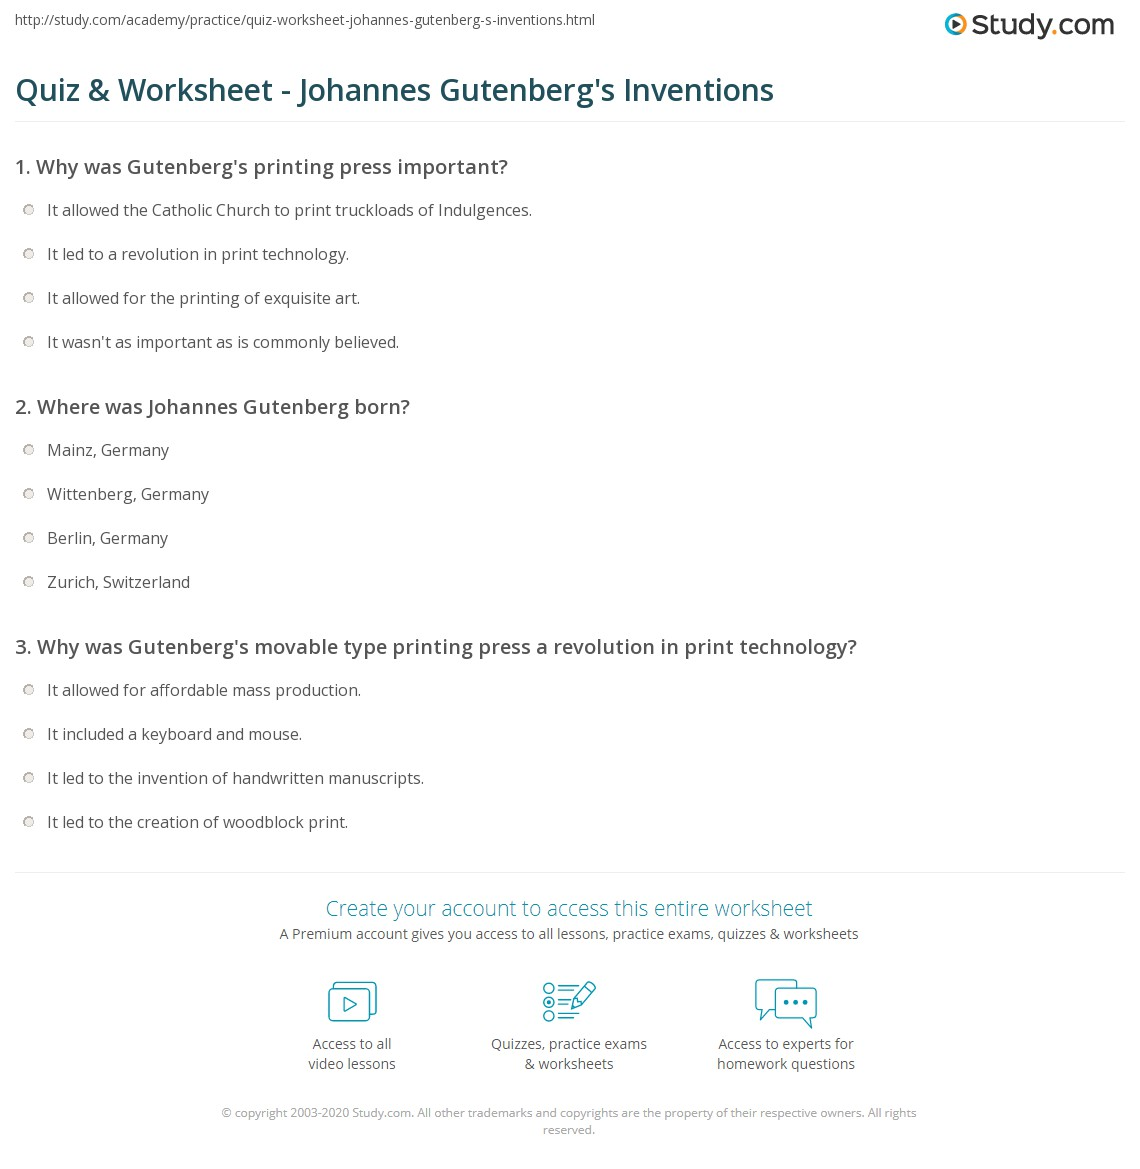 Weirdmailus  Gorgeous Quiz Amp Worksheet  Johannes Gutenbergs Inventions  Studycom With Exquisite Print Johannes Gutenberg Inventions Facts Amp Accomplishments Worksheet With Archaic Mole Mole Problems Worksheet Answers Also Printable Subtraction Worksheets In Addition Similes Worksheets And Free Monthly Budget Worksheet As Well As Math Homework Worksheets Additionally Nuclear Reaction Worksheet From Studycom With Weirdmailus  Exquisite Quiz Amp Worksheet  Johannes Gutenbergs Inventions  Studycom With Archaic Print Johannes Gutenberg Inventions Facts Amp Accomplishments Worksheet And Gorgeous Mole Mole Problems Worksheet Answers Also Printable Subtraction Worksheets In Addition Similes Worksheets From Studycom